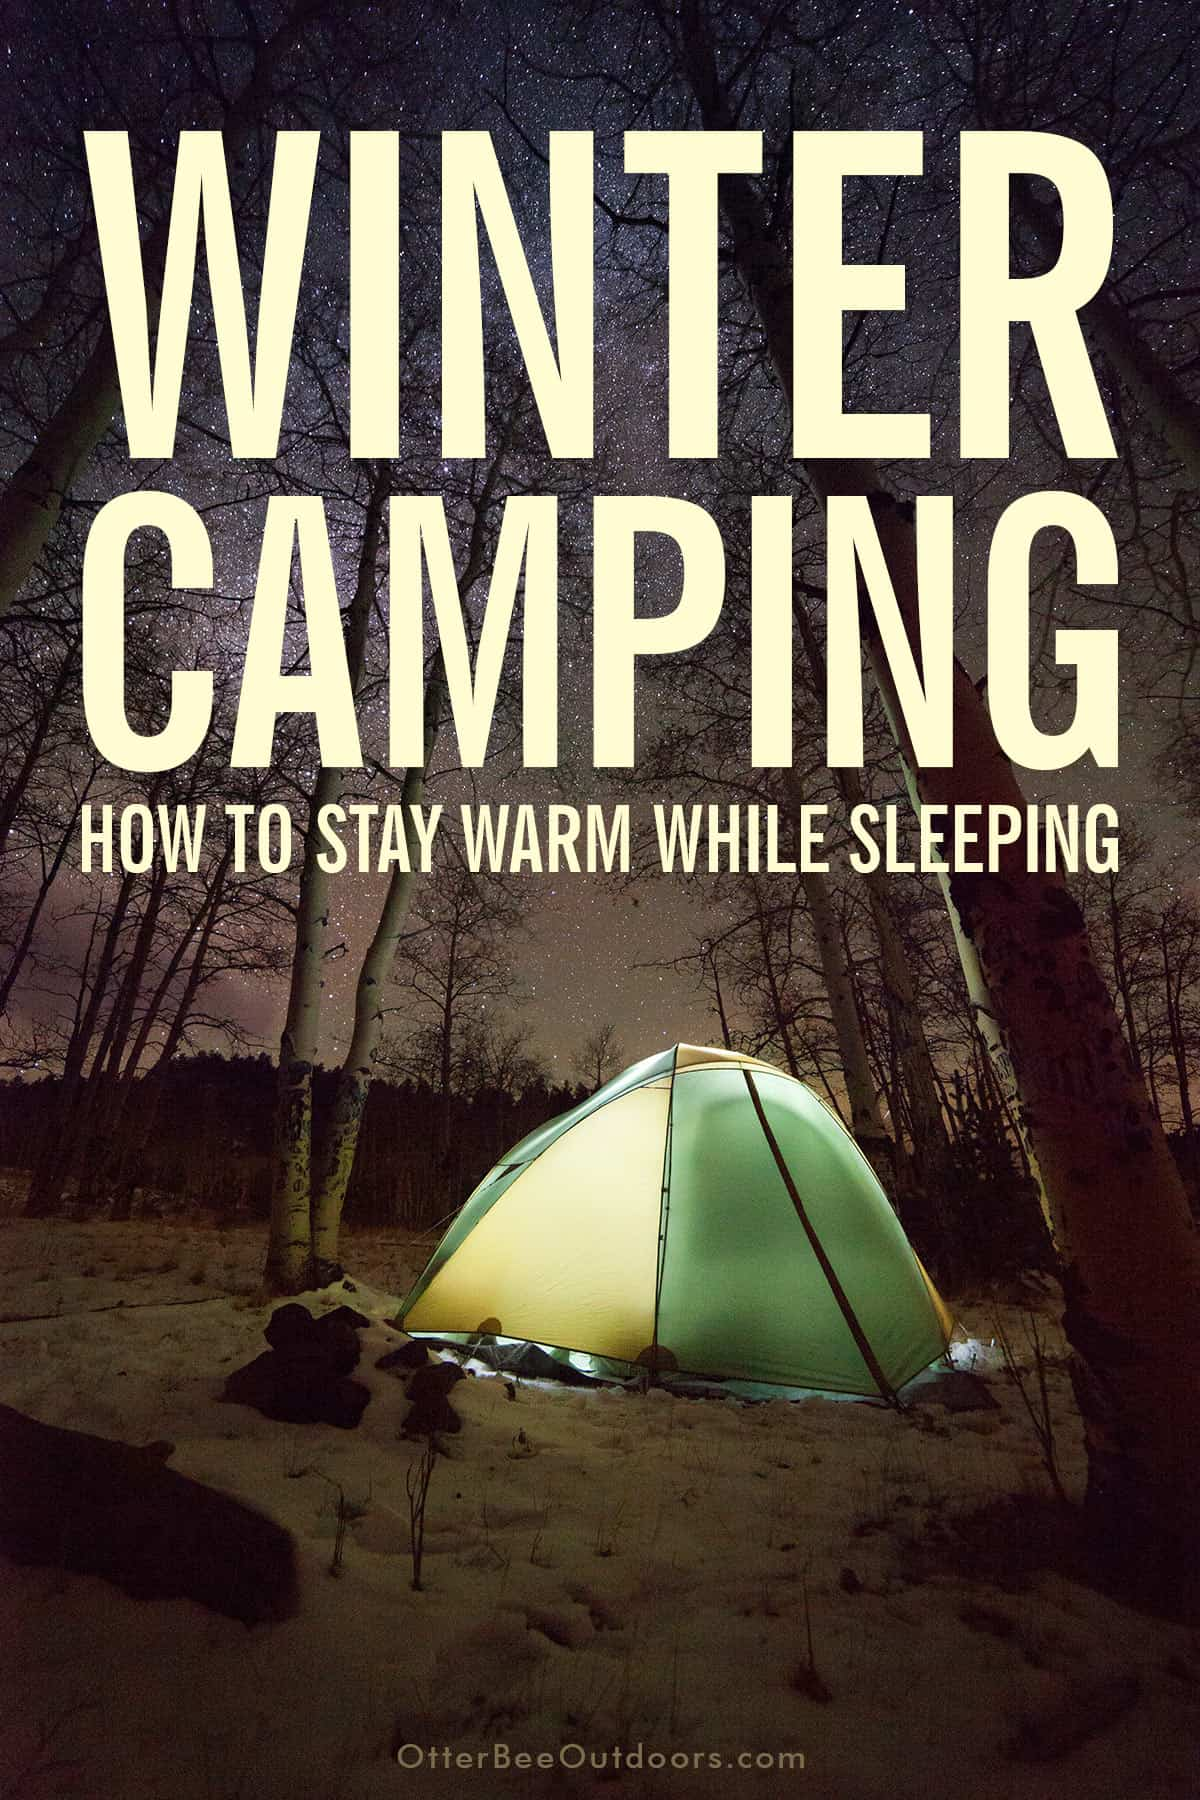 Winter camping scene of a 4-season tent in snowy woods on a beautiful night beneath the stars. The graphic says Winter Camping: How To Stay Warm While Sleeping.